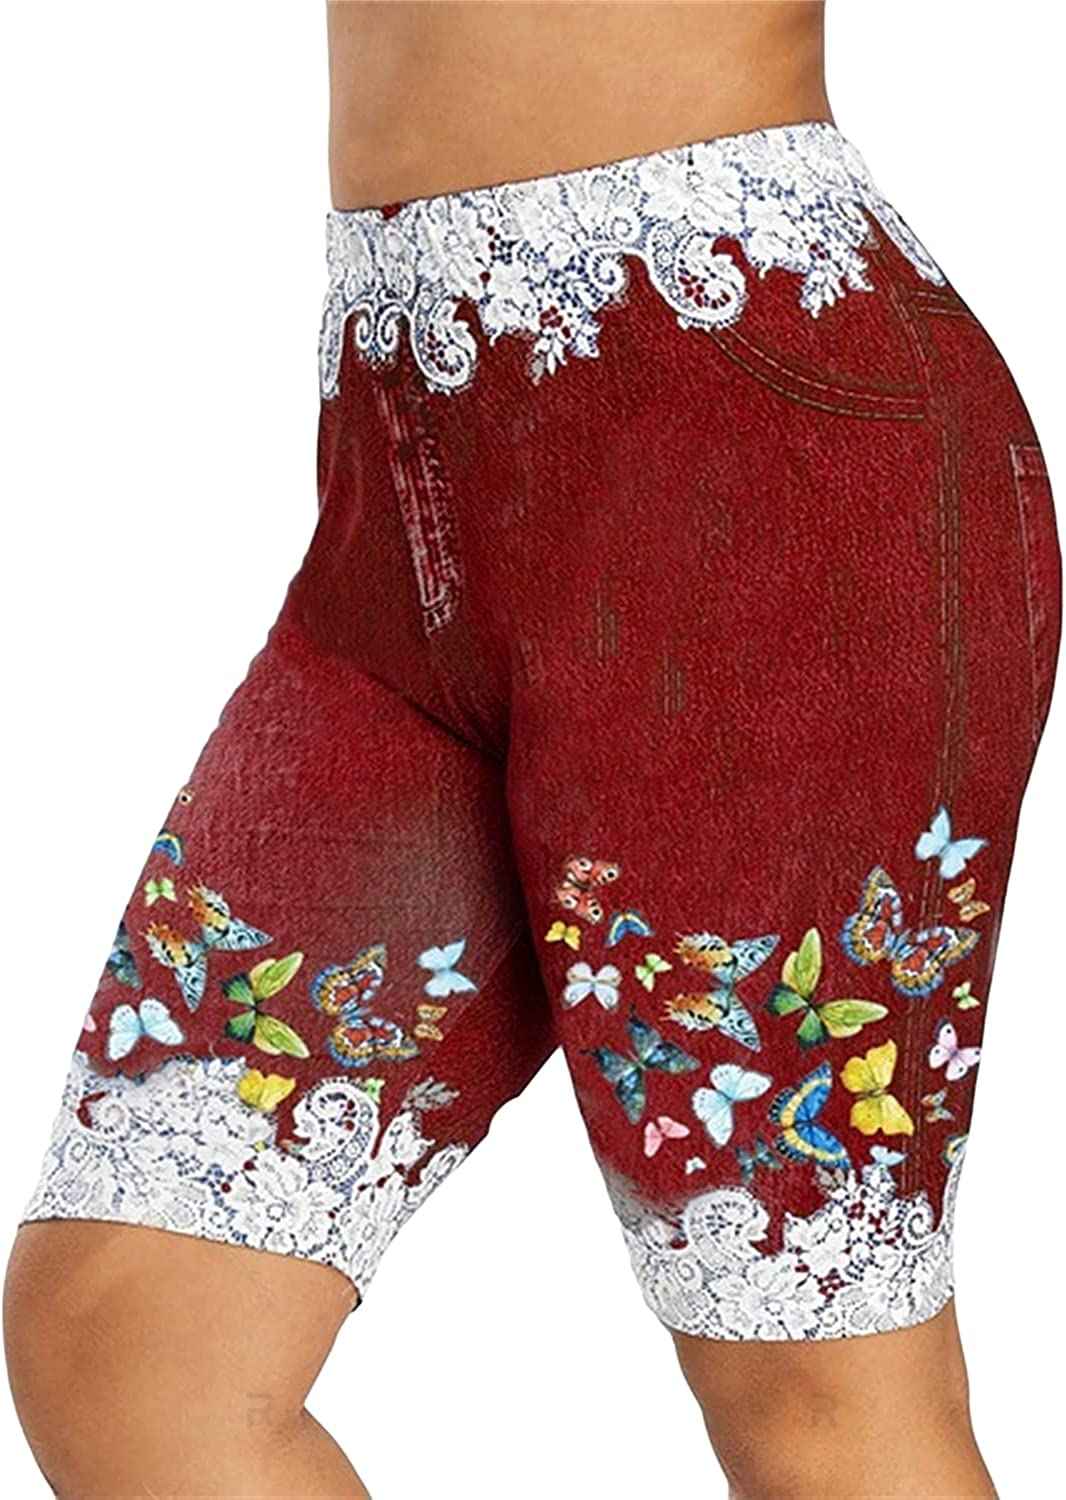 Women's Printed Legging Short Jeans Austin Mall Sale special price Bermud Length Butterfly Knee